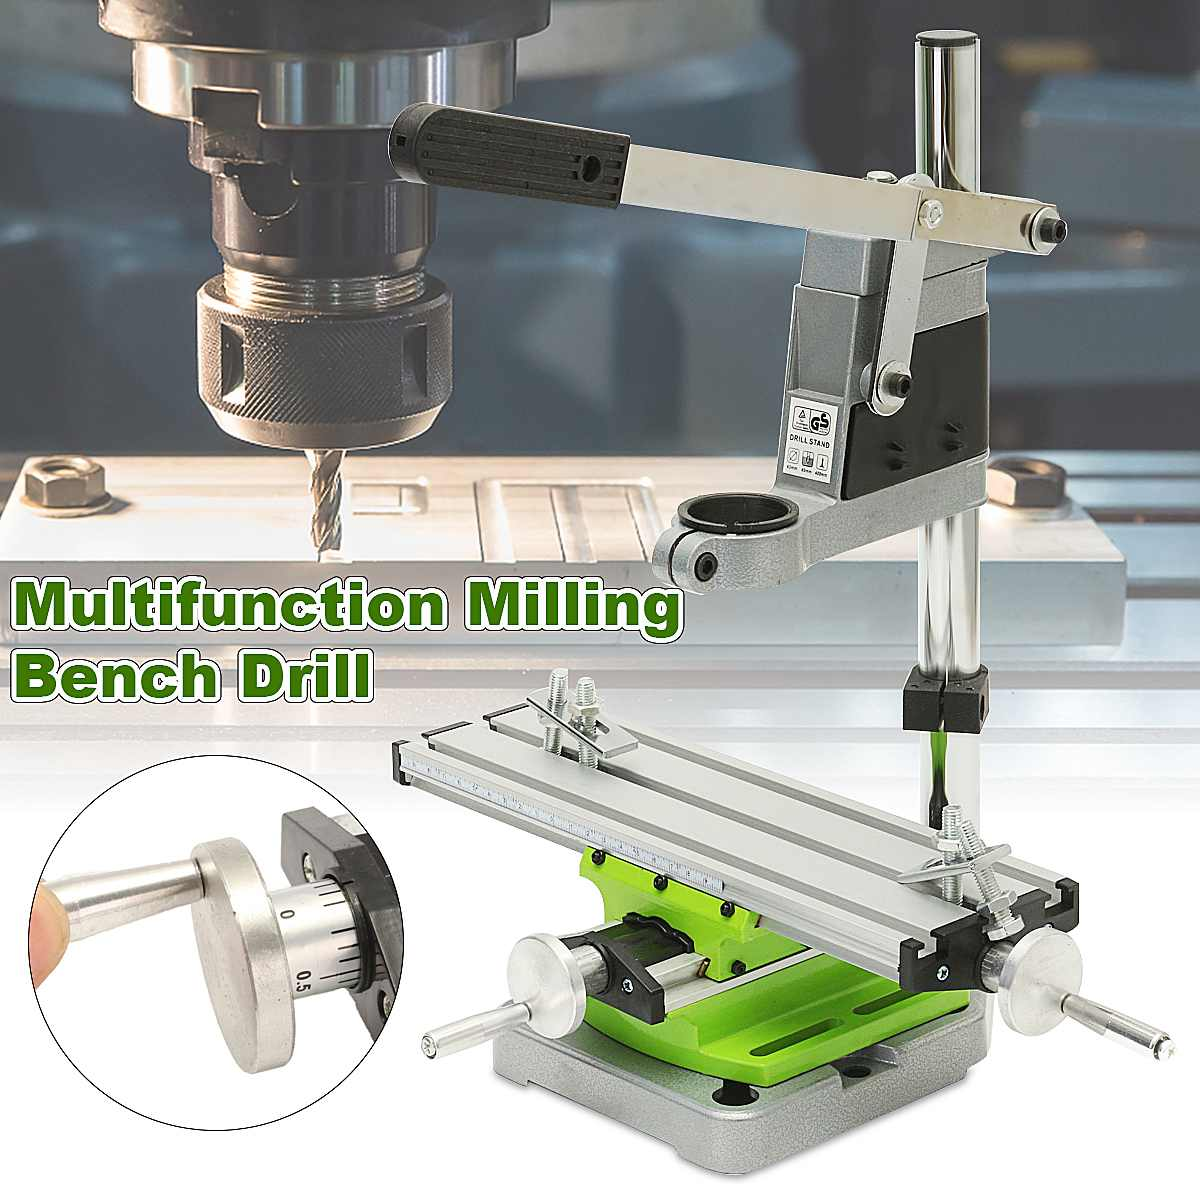 DIY Adjustment Worktable Vise Multifunction 2 Axis Milling Compound Working Table Cross Sliding Bench Drill Vise FixtureDIY Adjustment Worktable Vise Multifunction 2 Axis Milling Compound Working Table Cross Sliding Bench Drill Vise Fixture